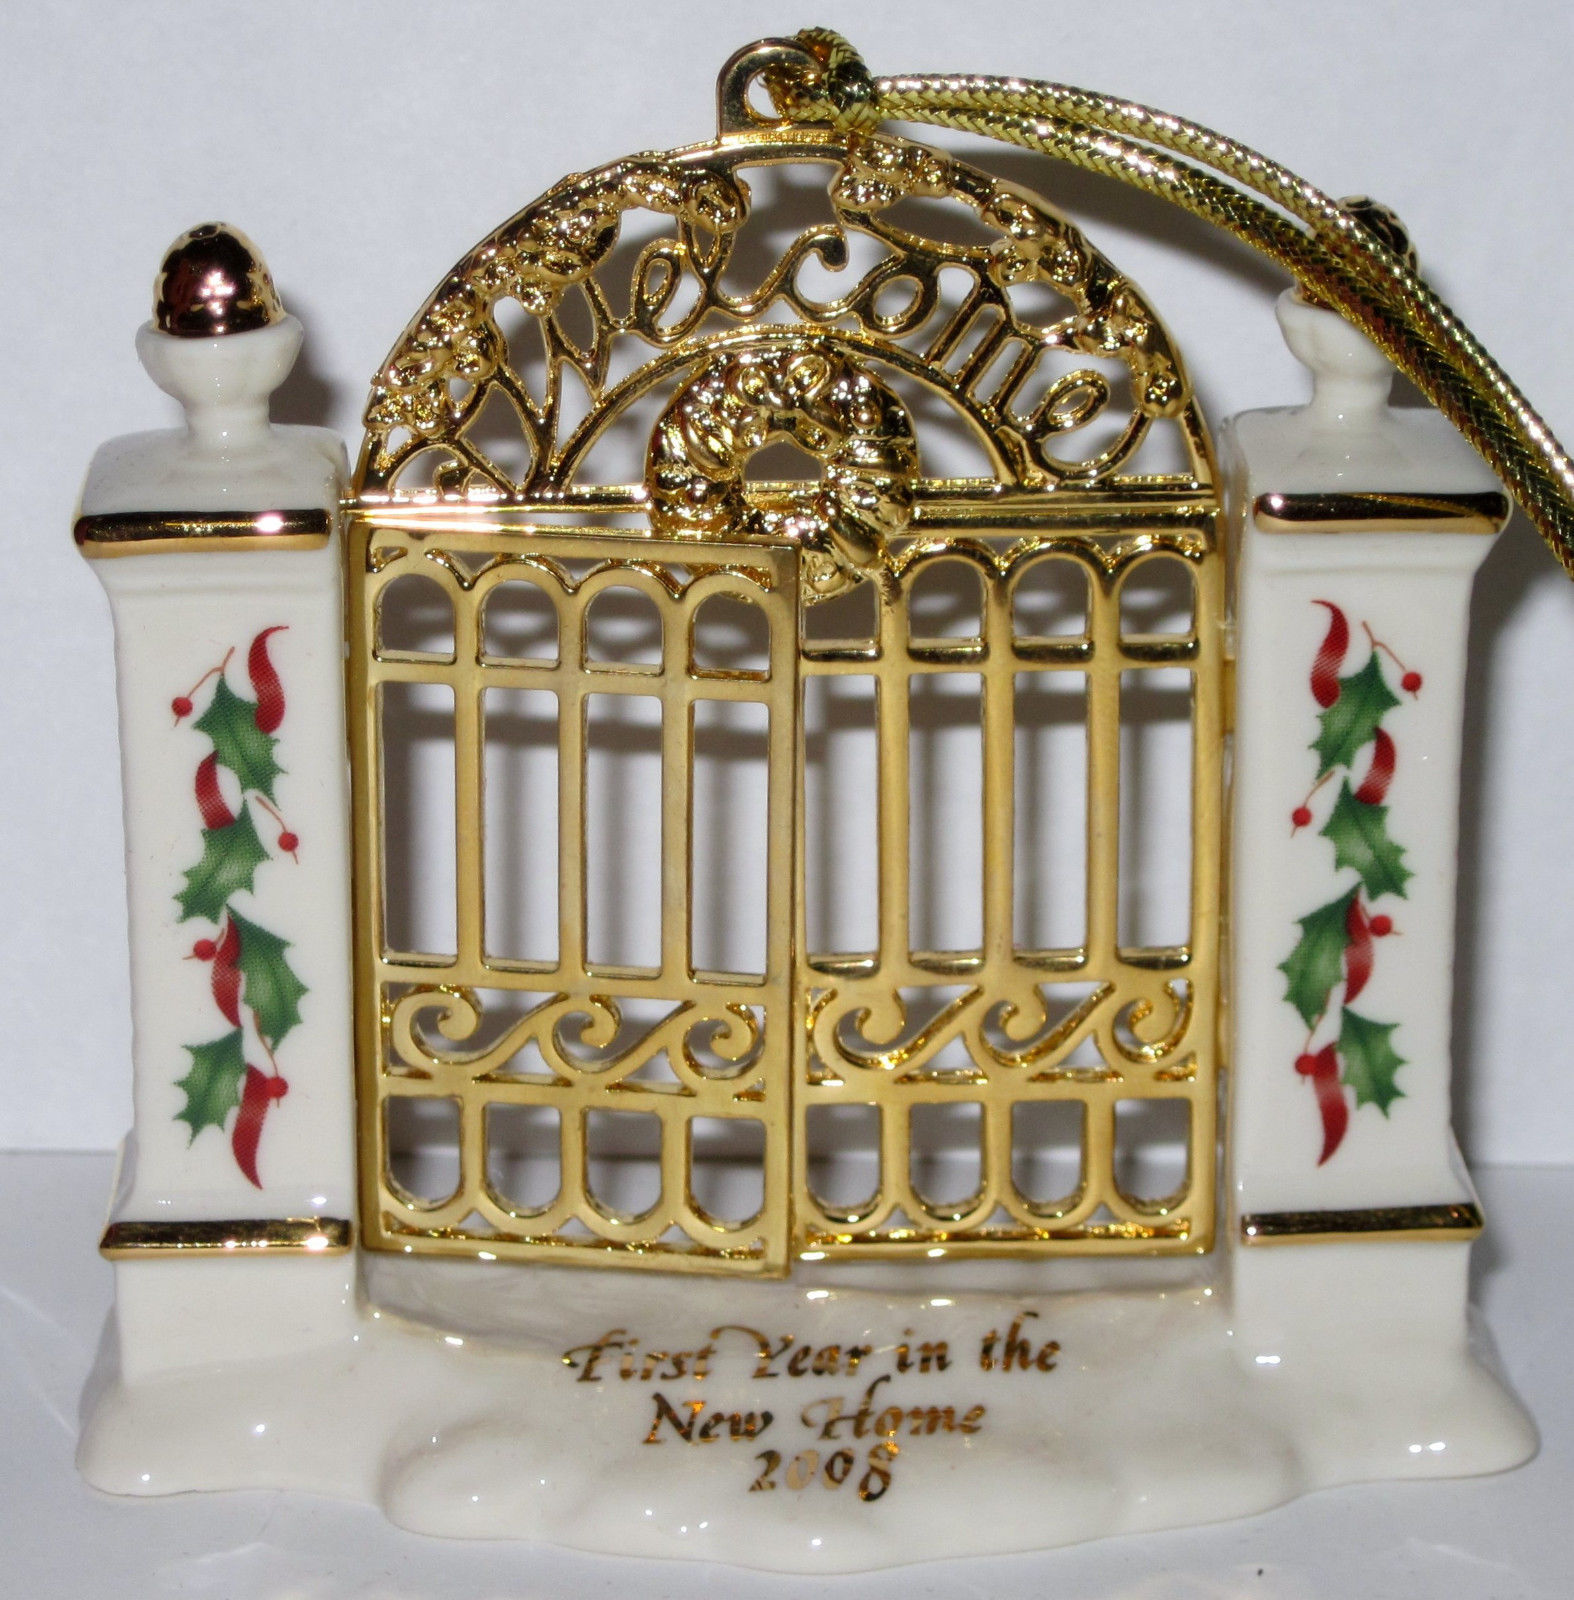 NIB Lenox 2008 Annual First Year in New Home Christmas Ornament Welcome Gate image 4